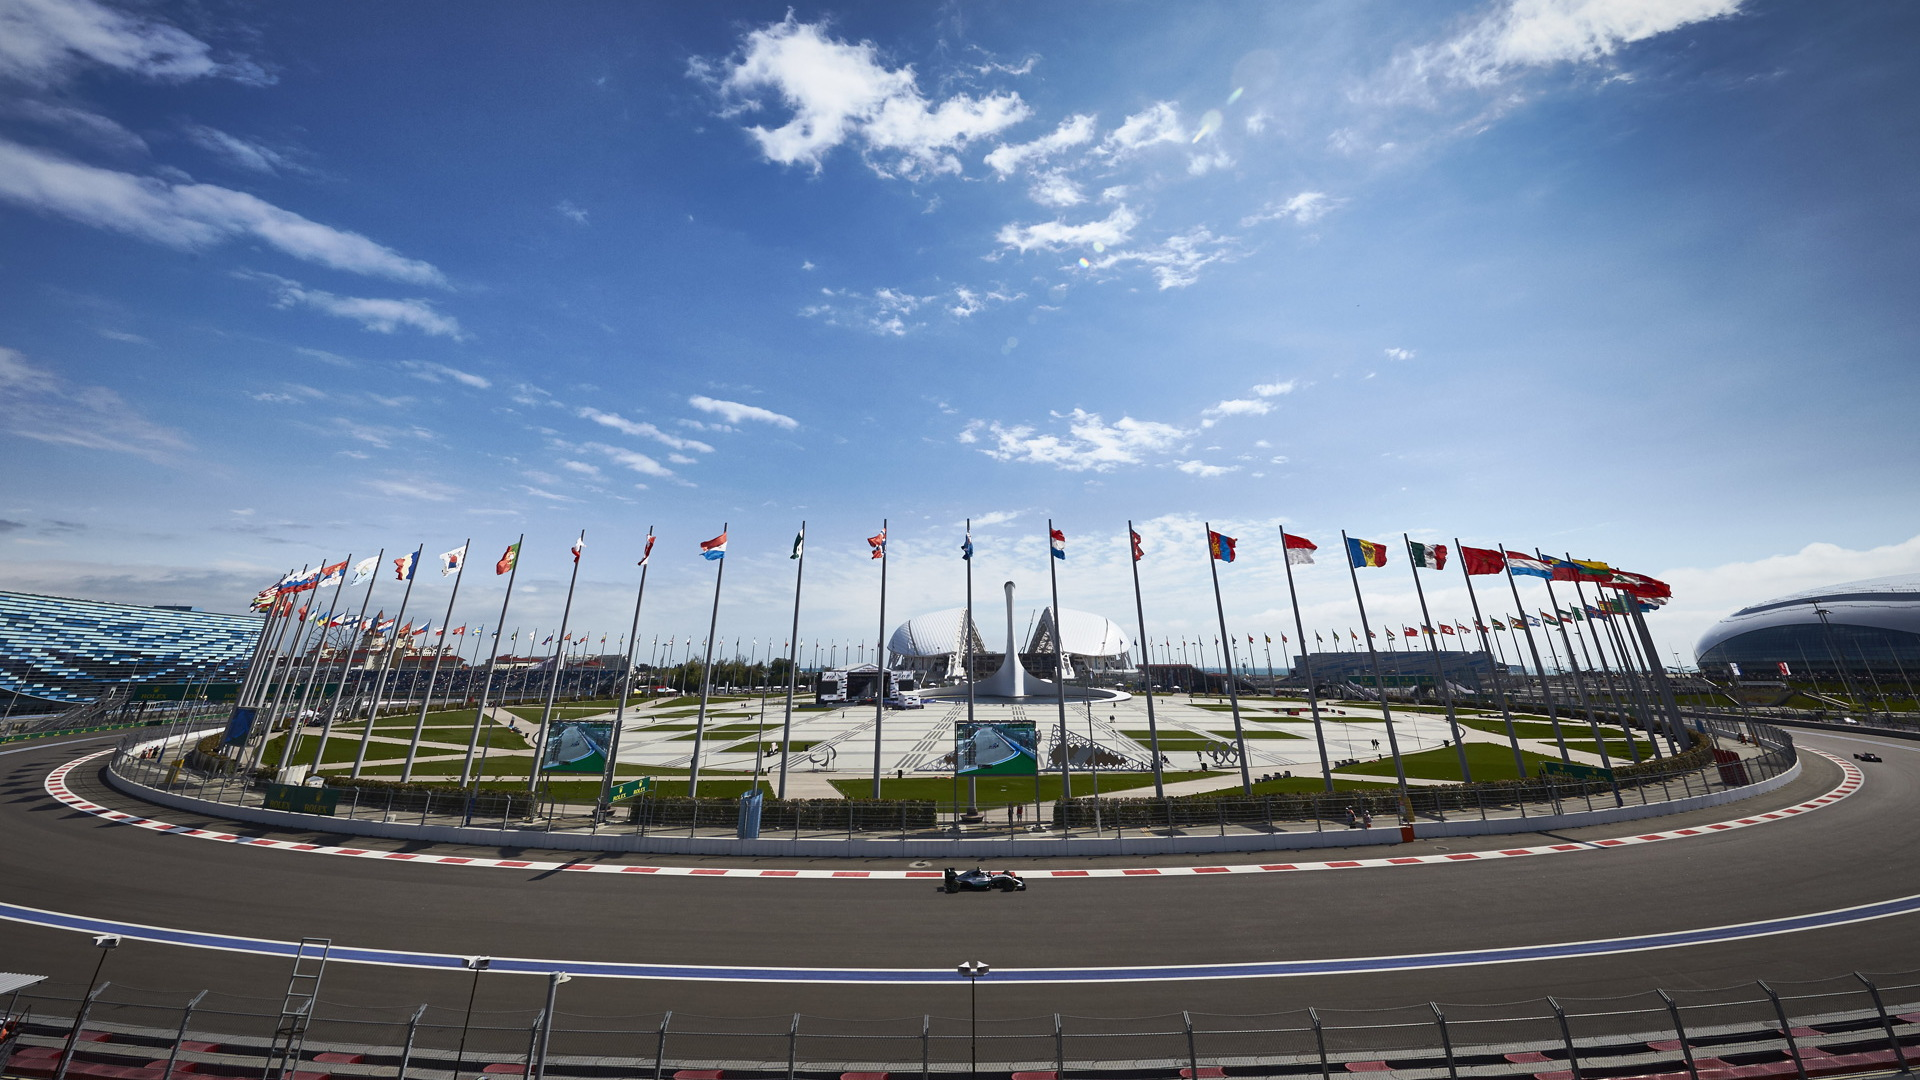 Sochi Autodrom, home of the Formula 1 Russian Grand Prix